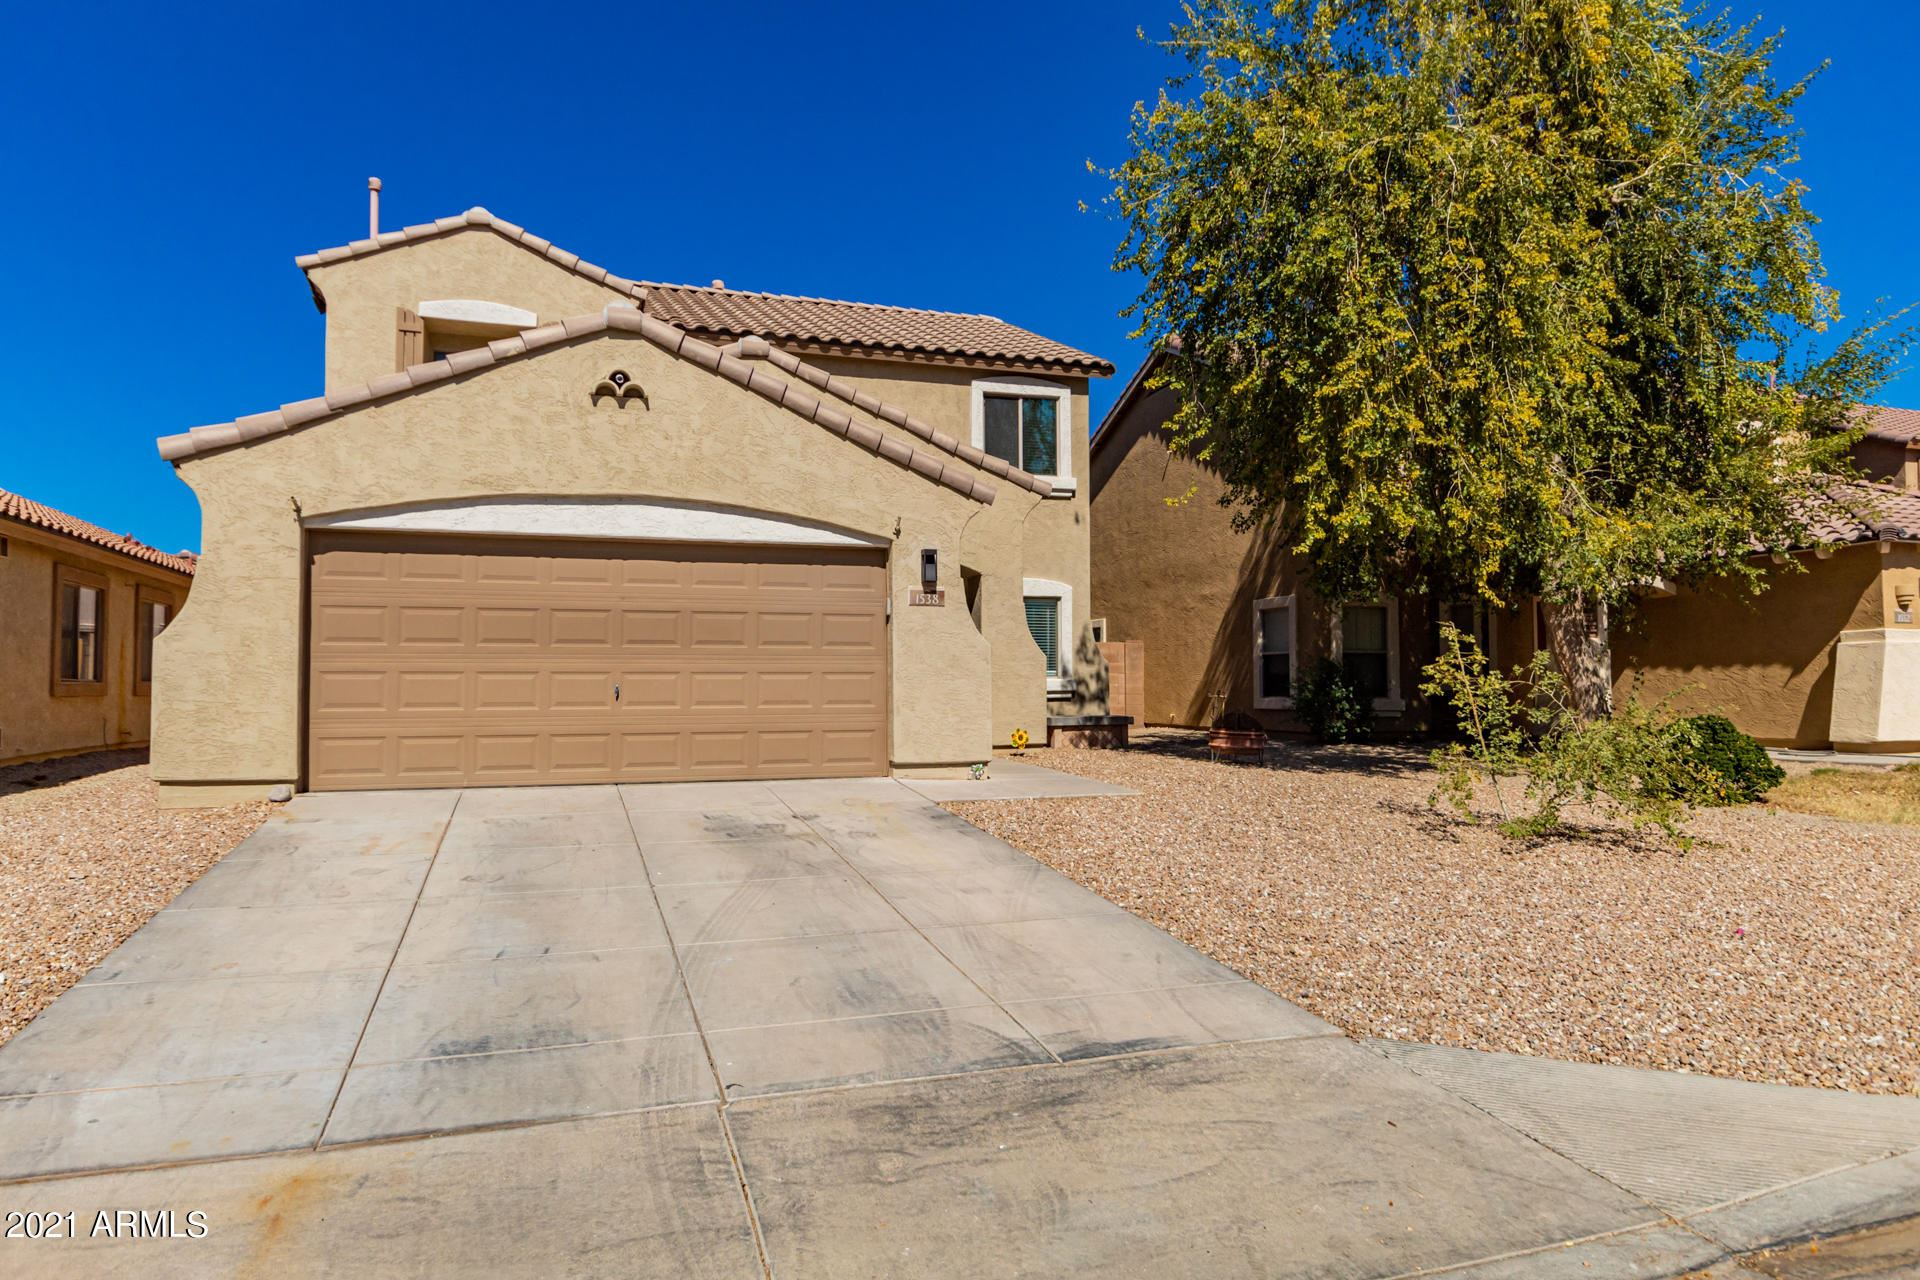 Photo of 1538 E Maddison Circle, San Tan Valley, AZ 85140 (MLS # 6203621)